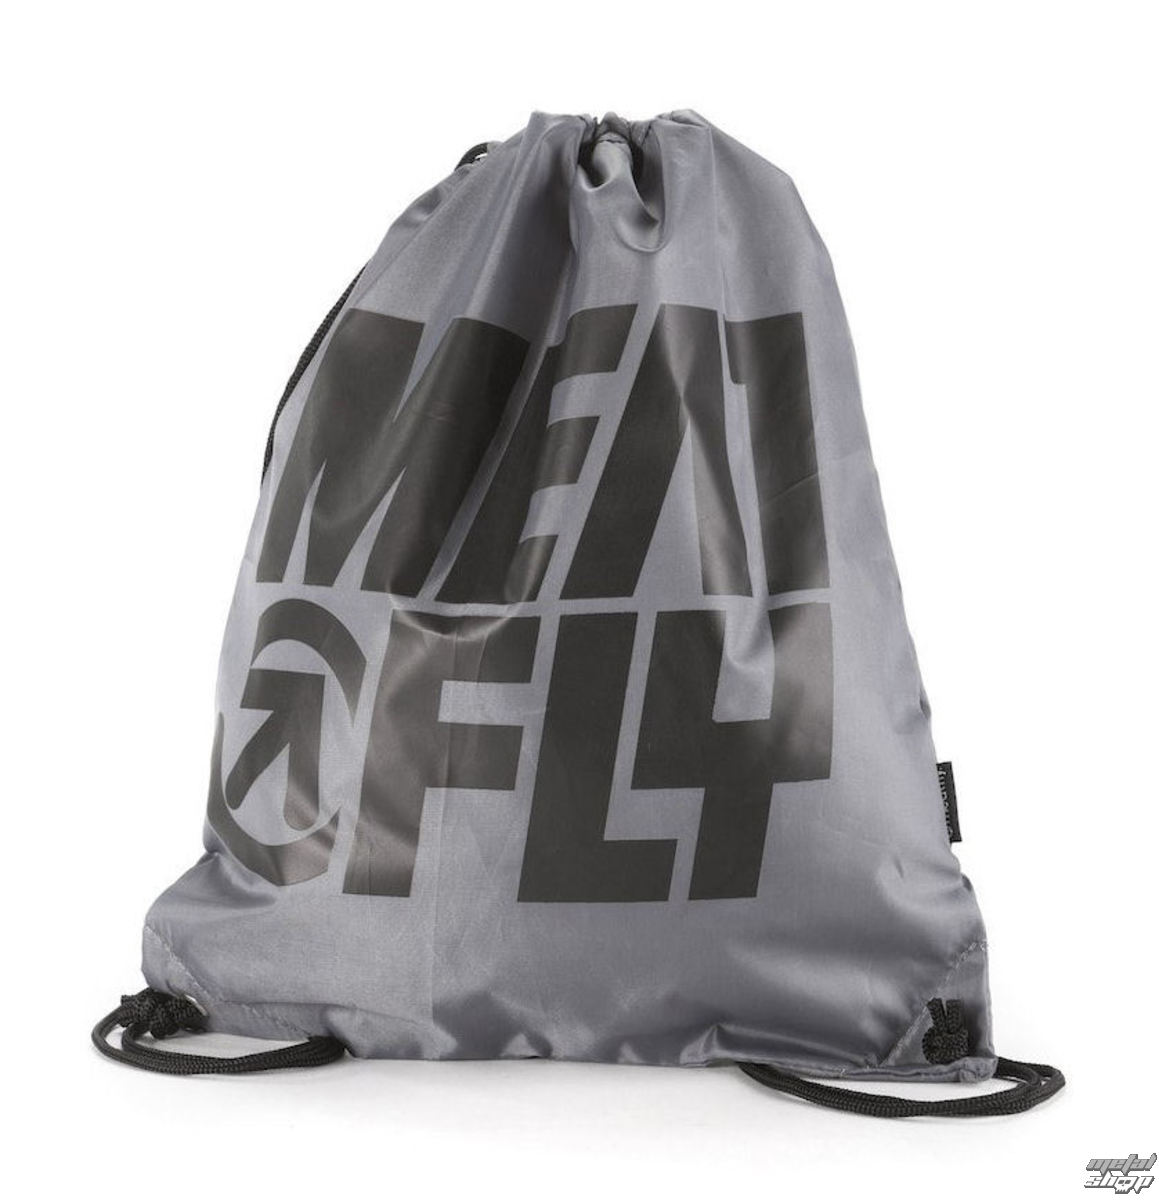 vak MEATFLY - Swing Benched Bag - Gray - MF-0402255762-16